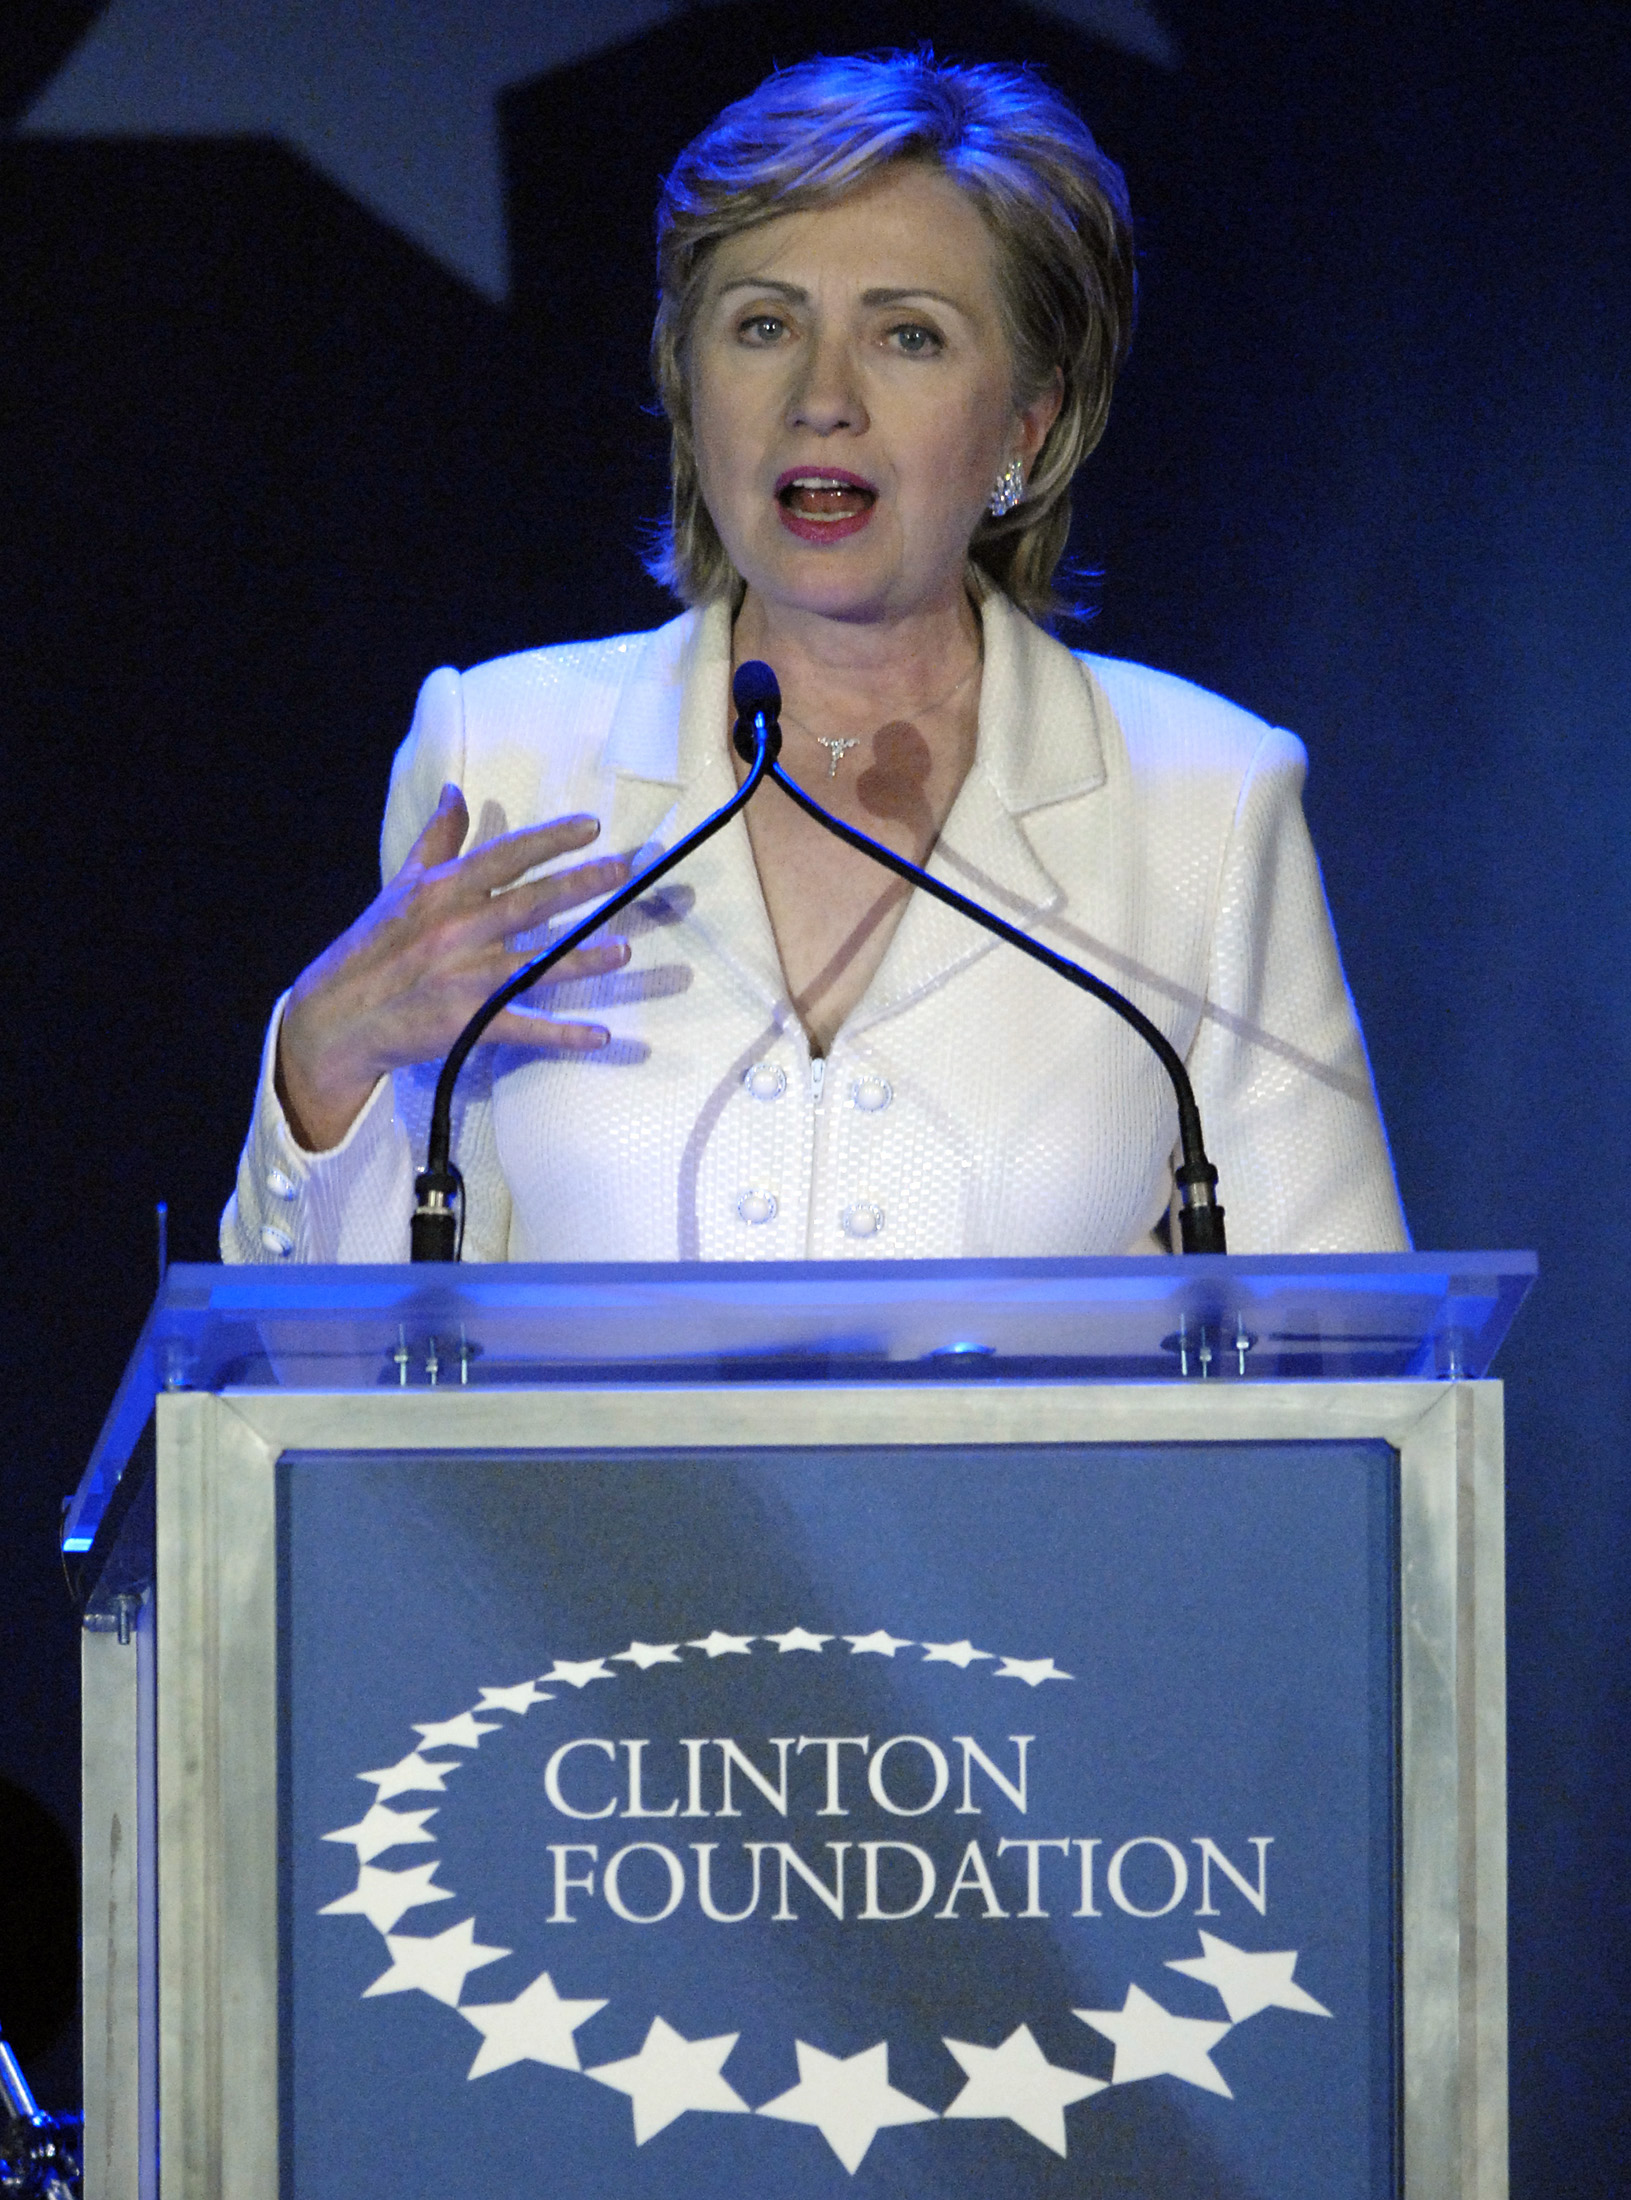 FILE - Senator Hillary Clinton, wife of former U.S. President Bill Clinton, speaks at a fund raising gala for her husband's Clinton Foundation as part of his birthday celebration in New York, Oct. 28, 2006.